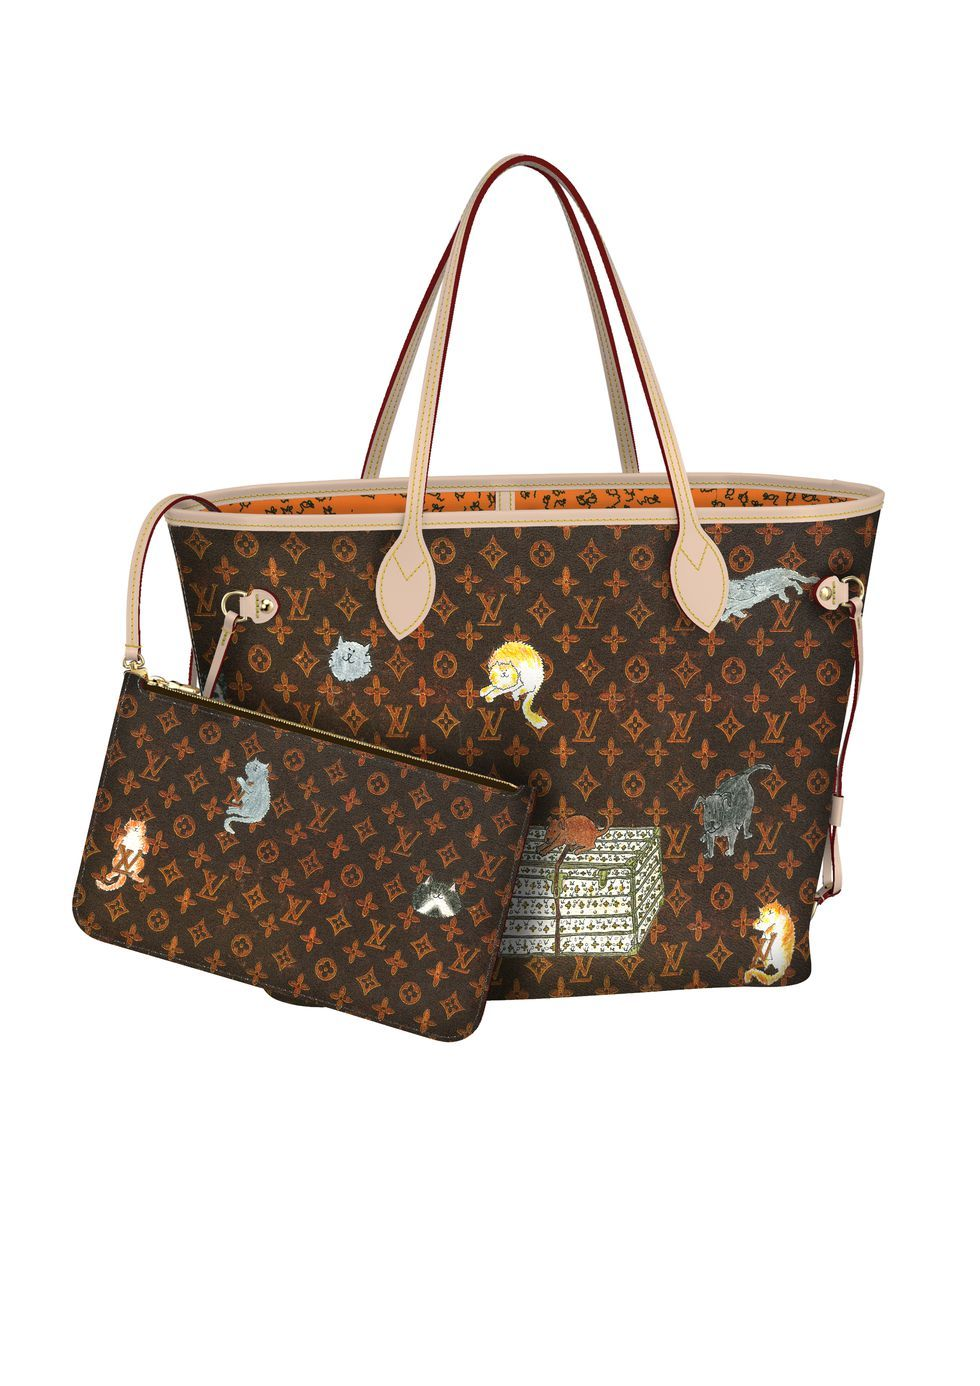 f0956a2d7986 Louis Vuitton x Grace Coddington